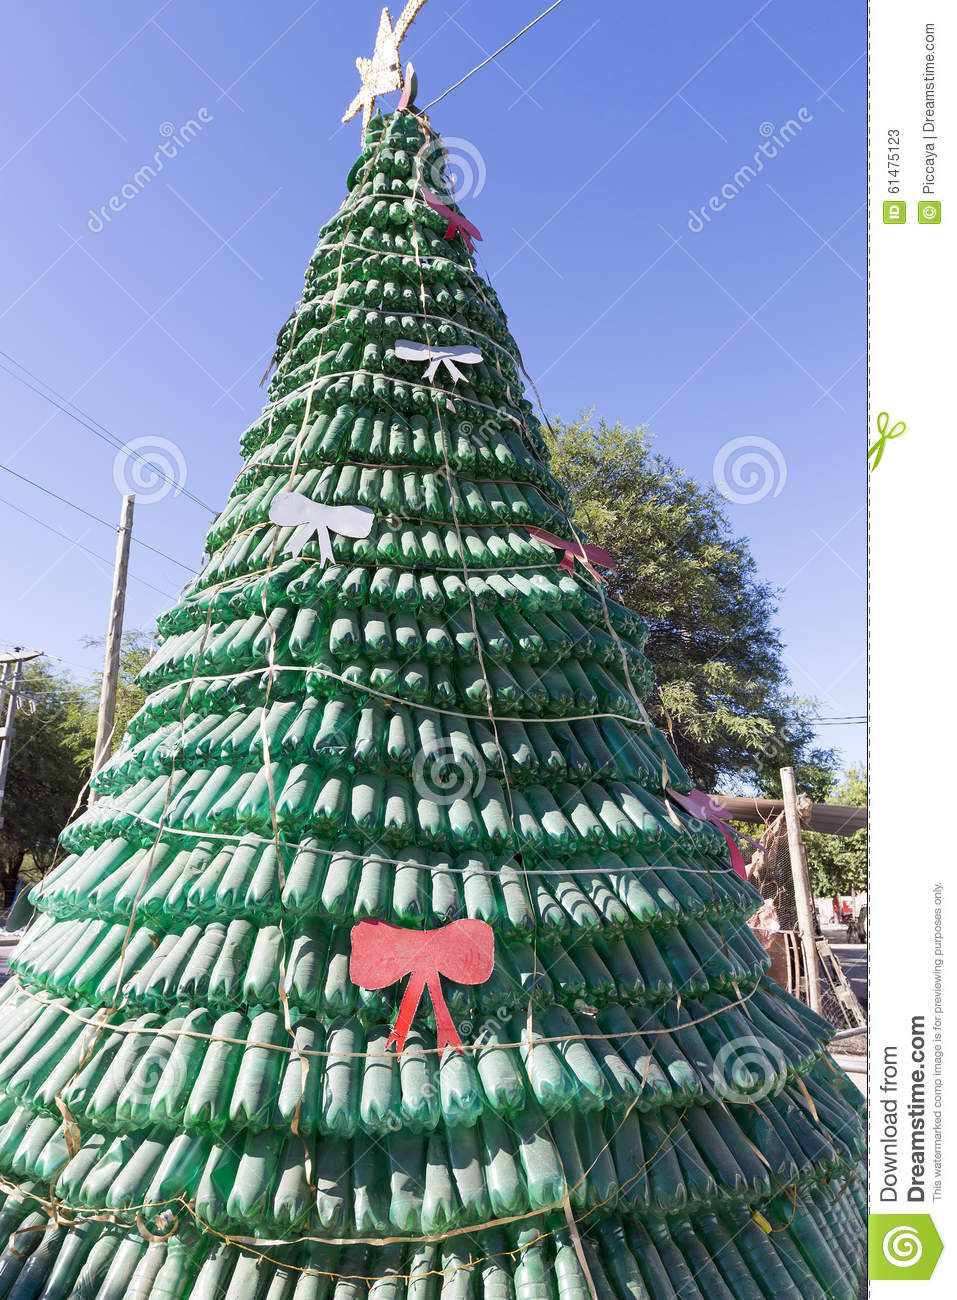 Christmas Tree Made Of Green Plastic Recycled Bottles